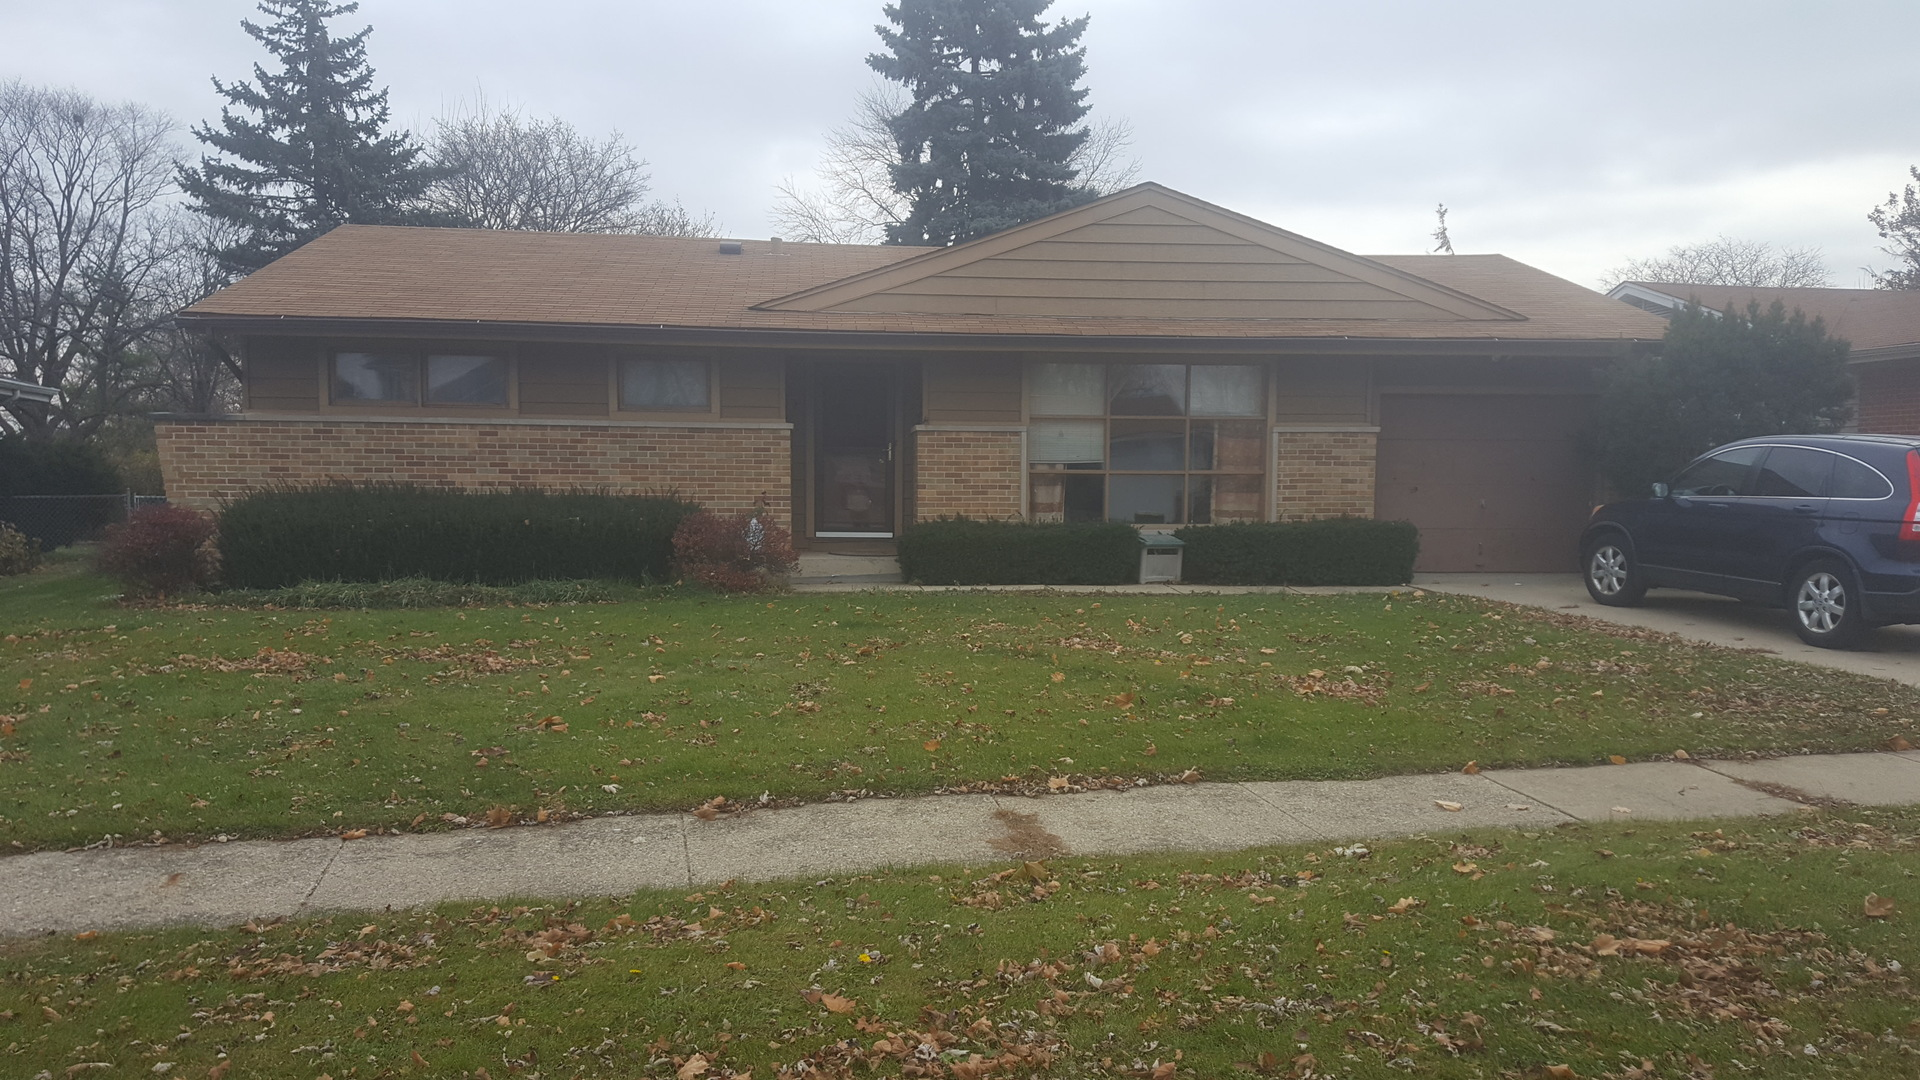 7 Ridgewood Road, Elk Grove Village in Cook County, IL 60007 Home for Sale